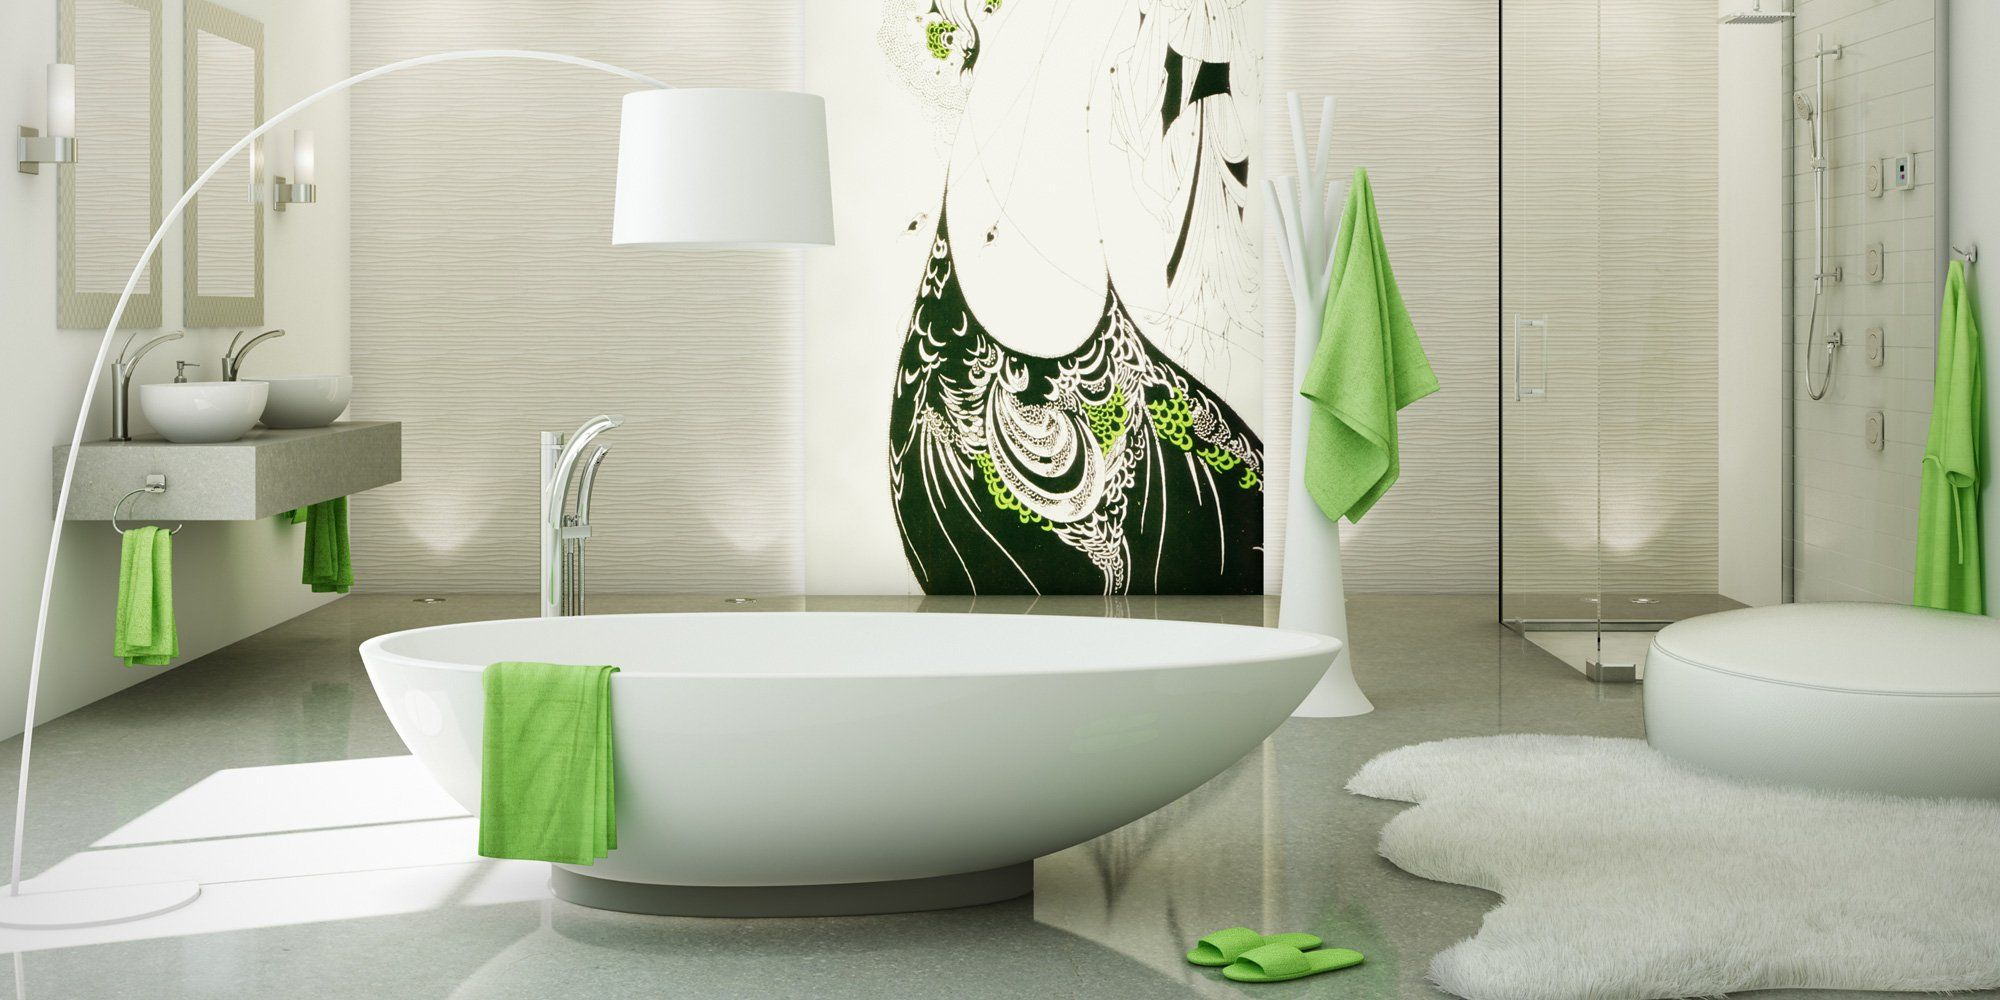 Riobe bathroom with freestanding tub